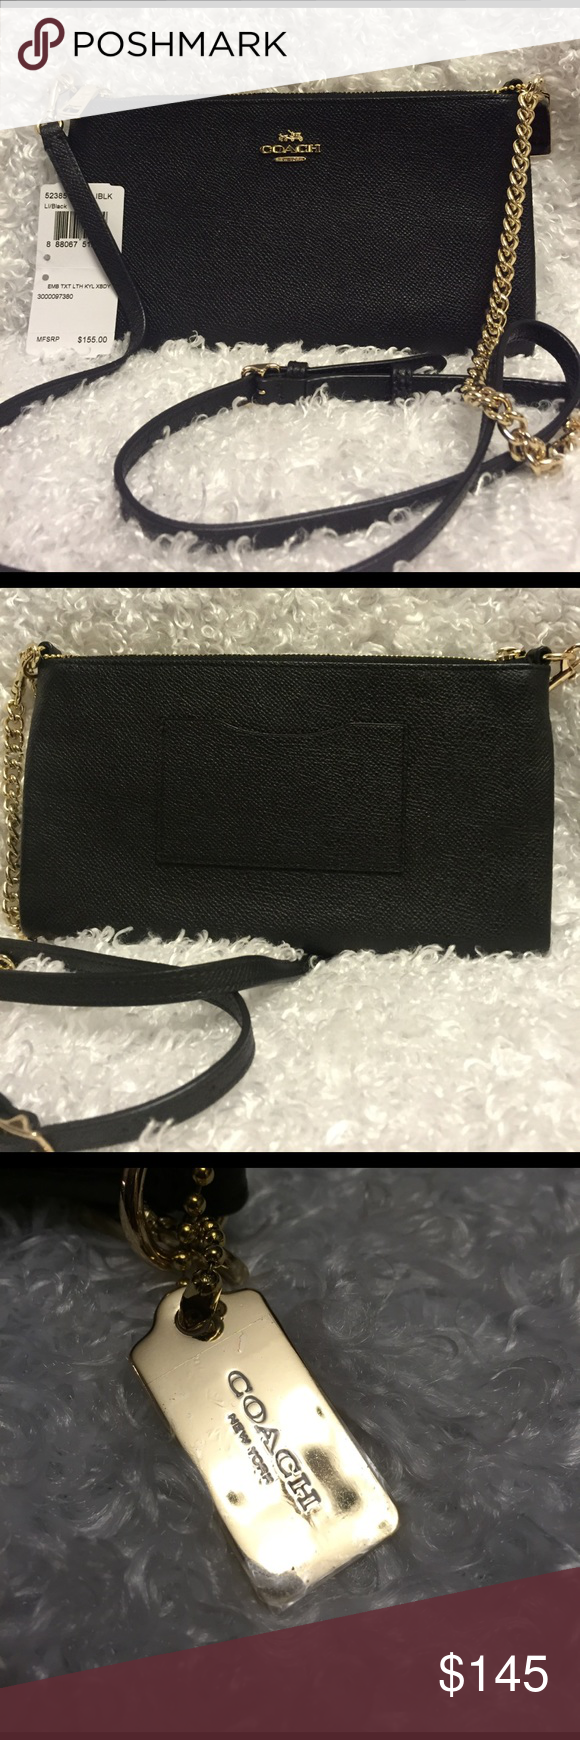 """Coach crossbody New   3 card slots, with inside pocket. Has a card holder on the back.  Gorgeous bag! 9""""x5"""" Coach Bags Crossbody Bags"""